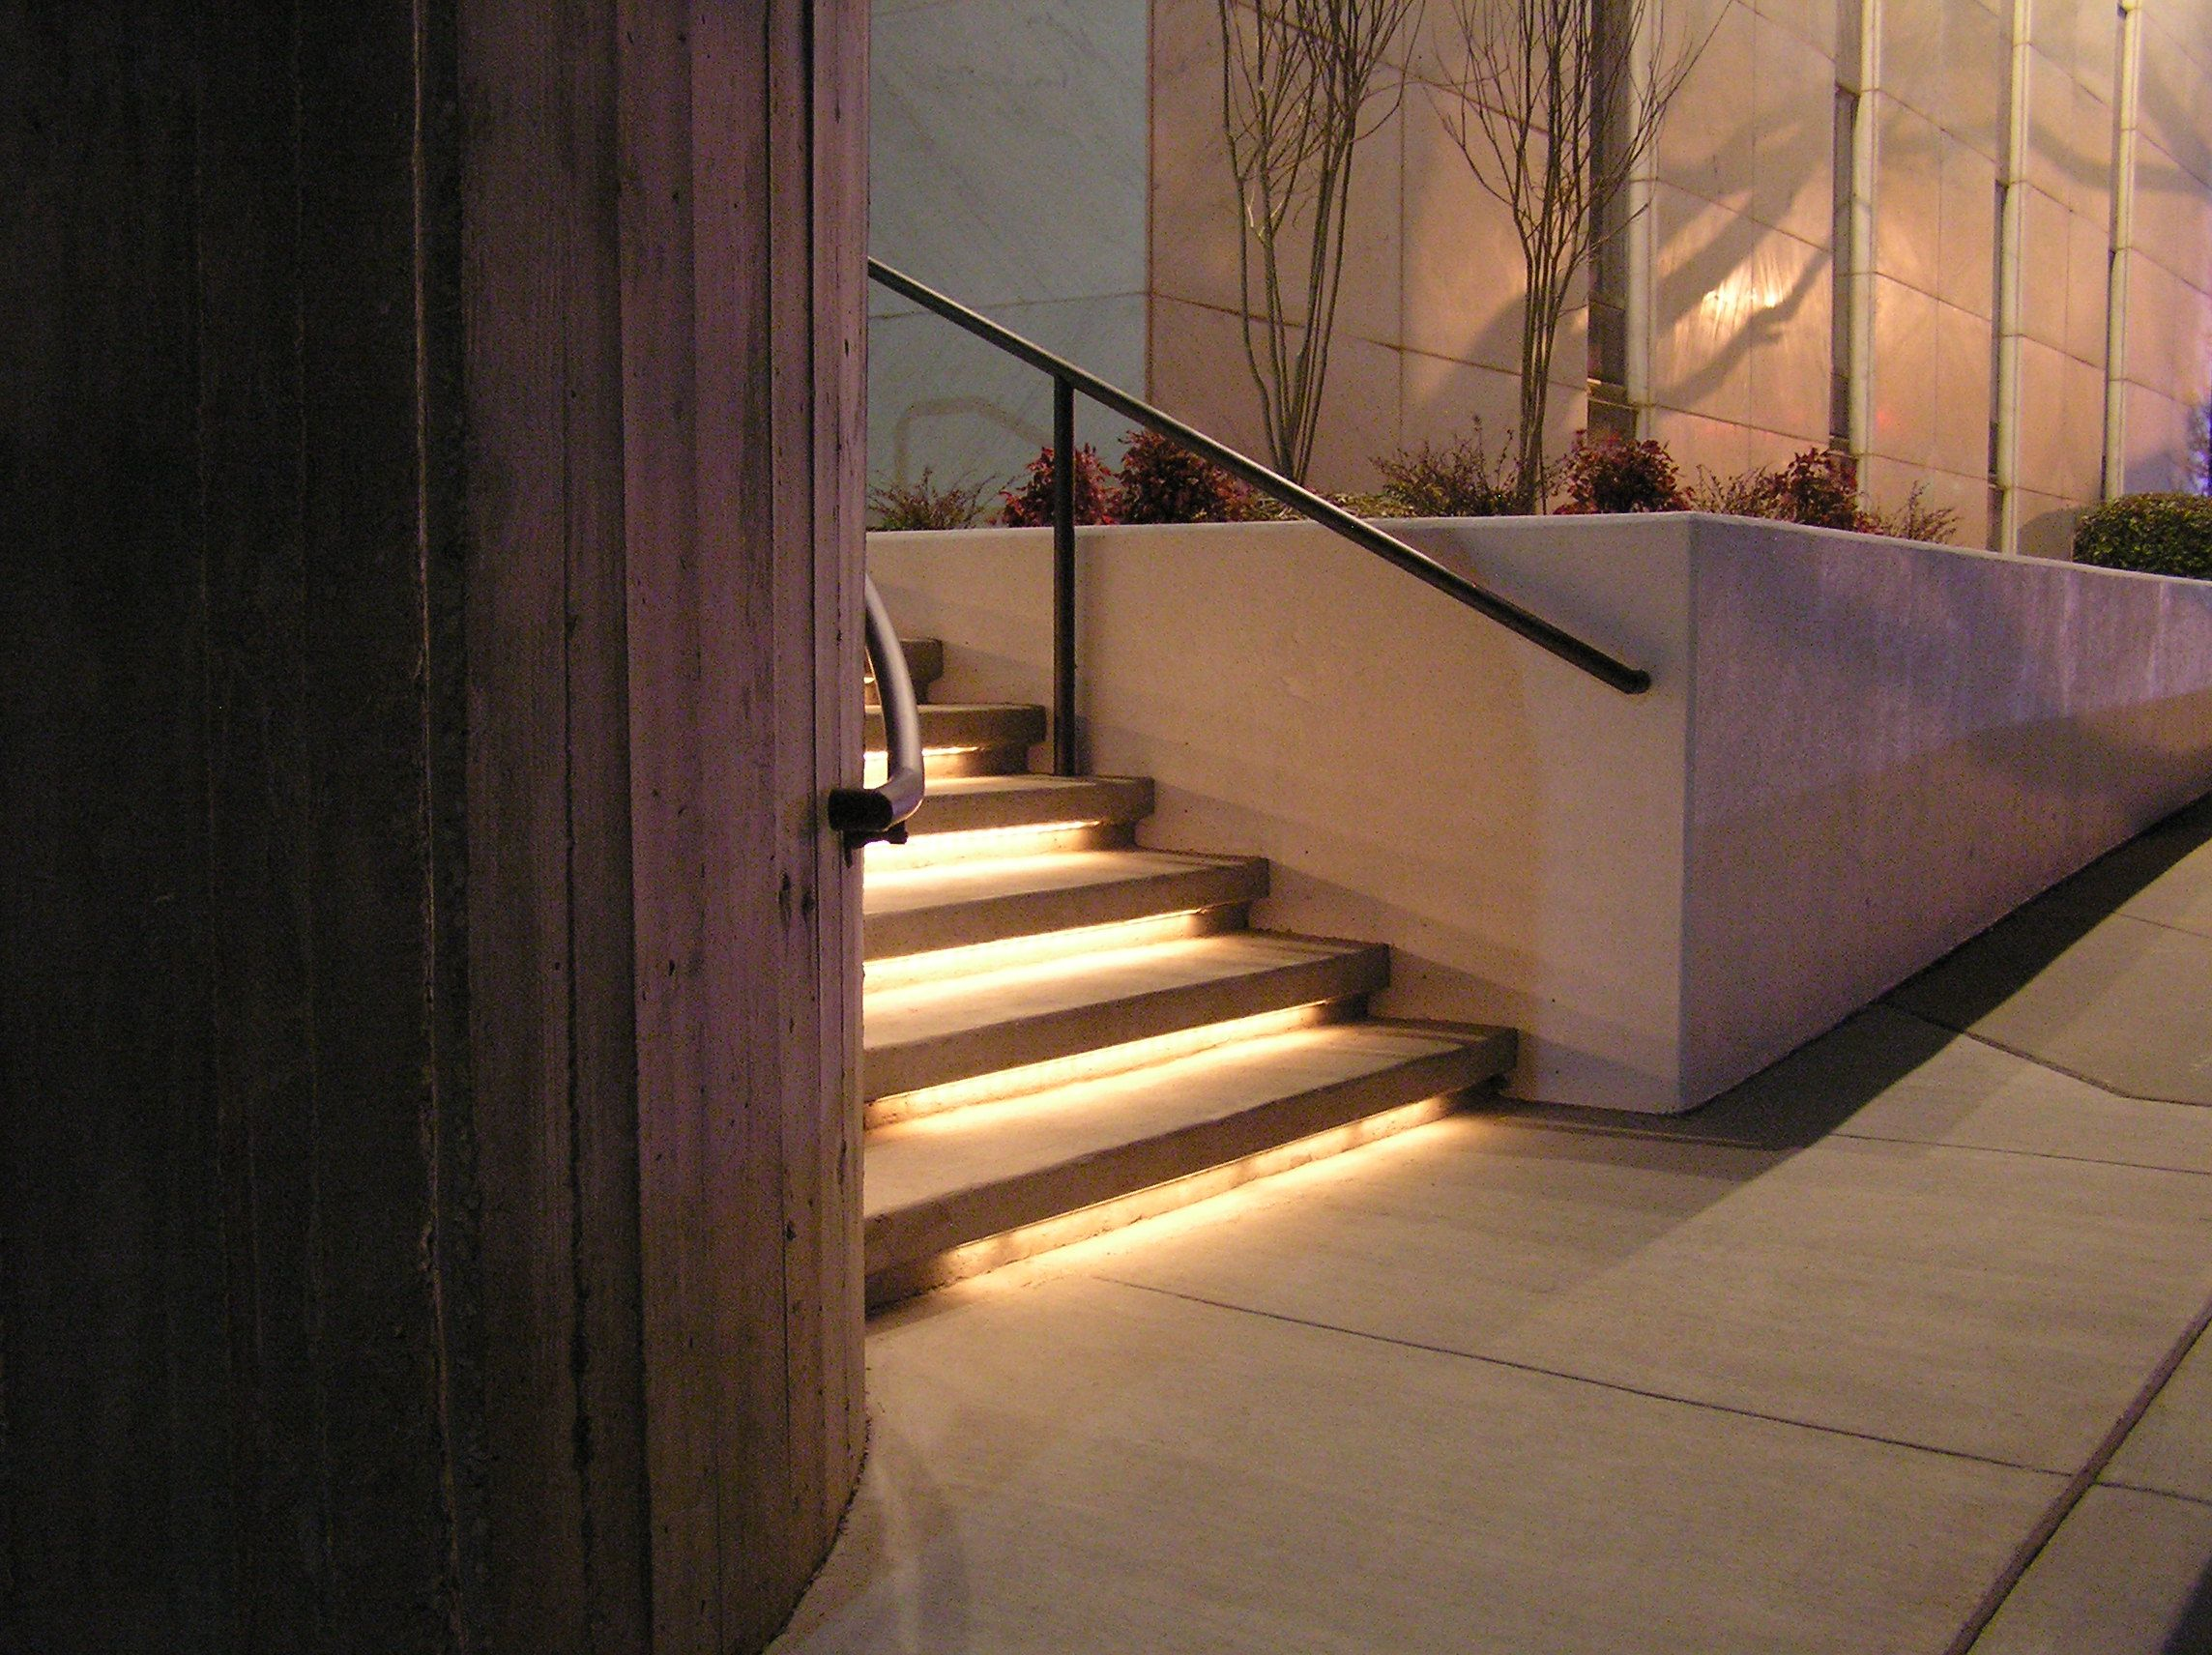 Find This Pin And More On Step Lighting Indoor U0026 Exterior.